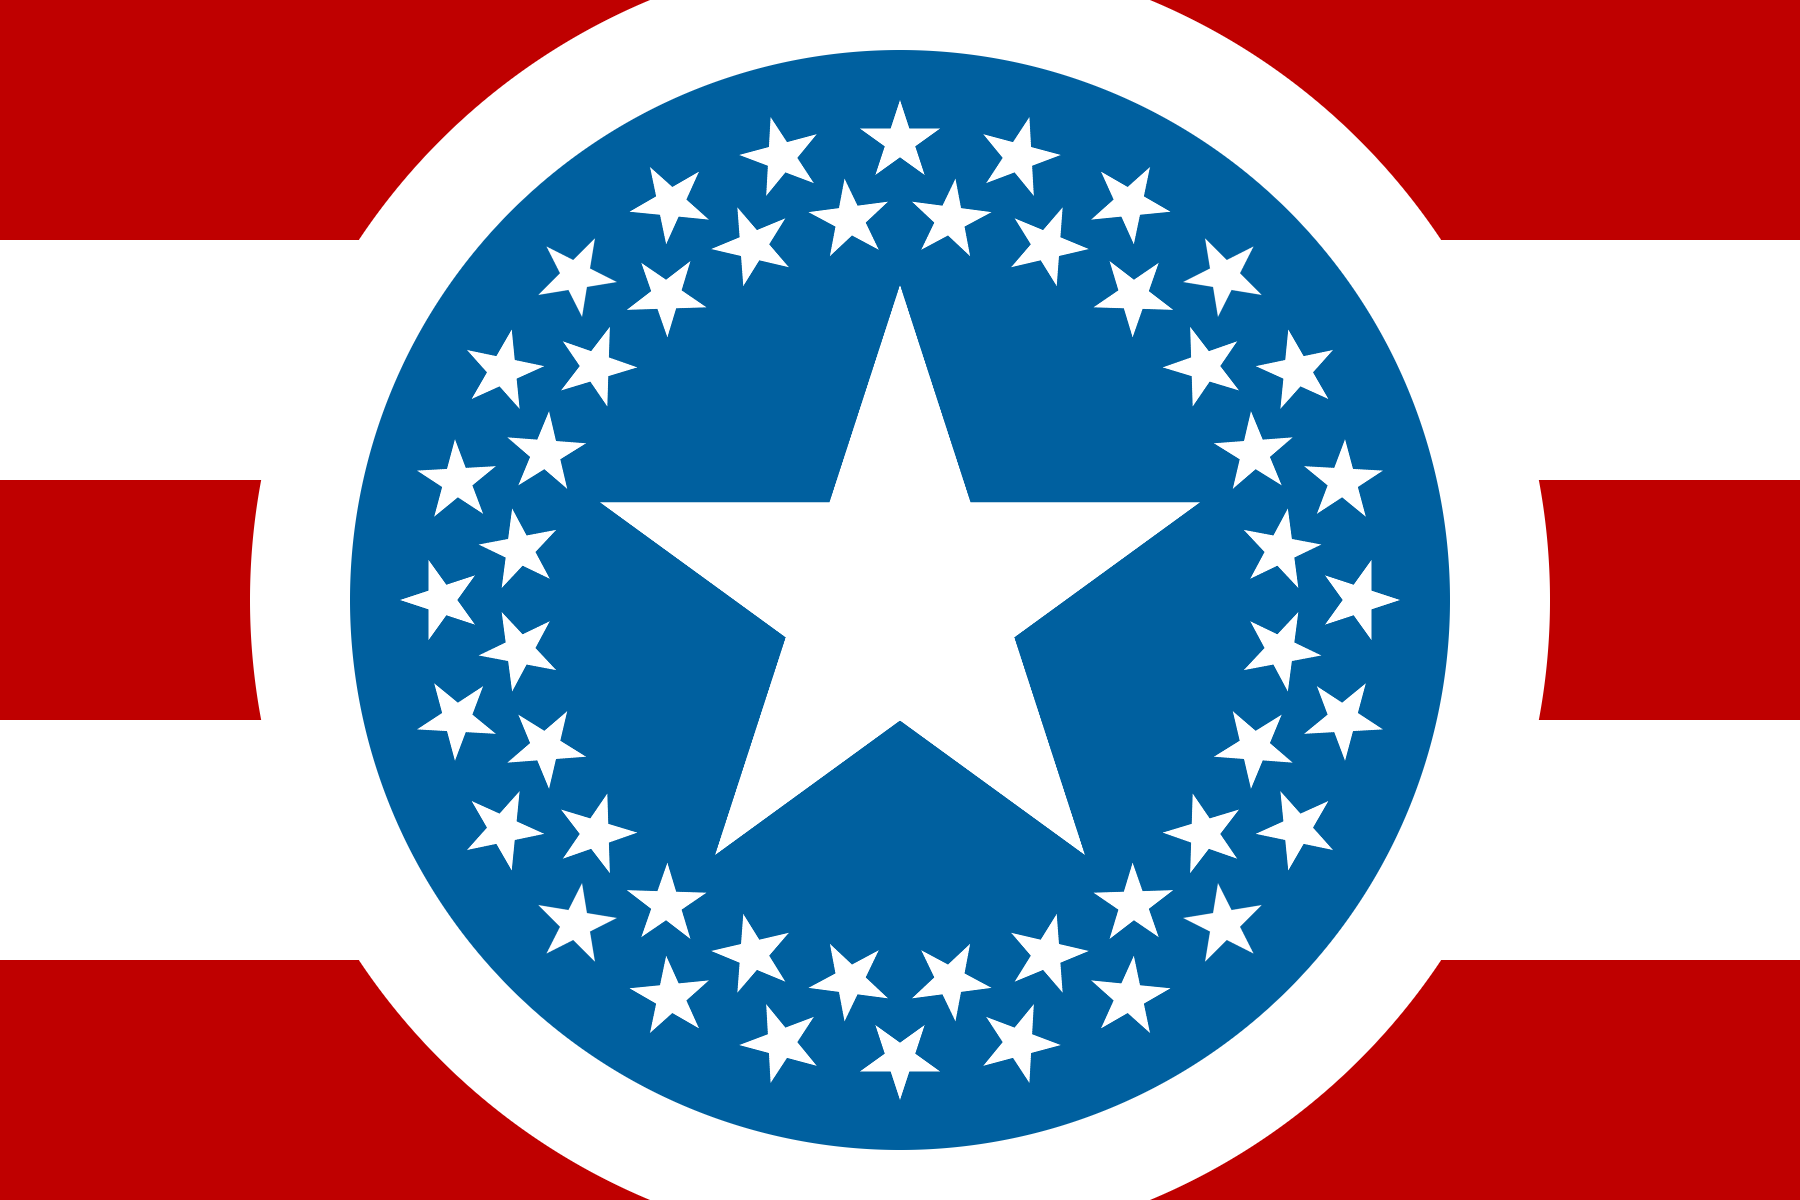 flag_of_appalachia.png